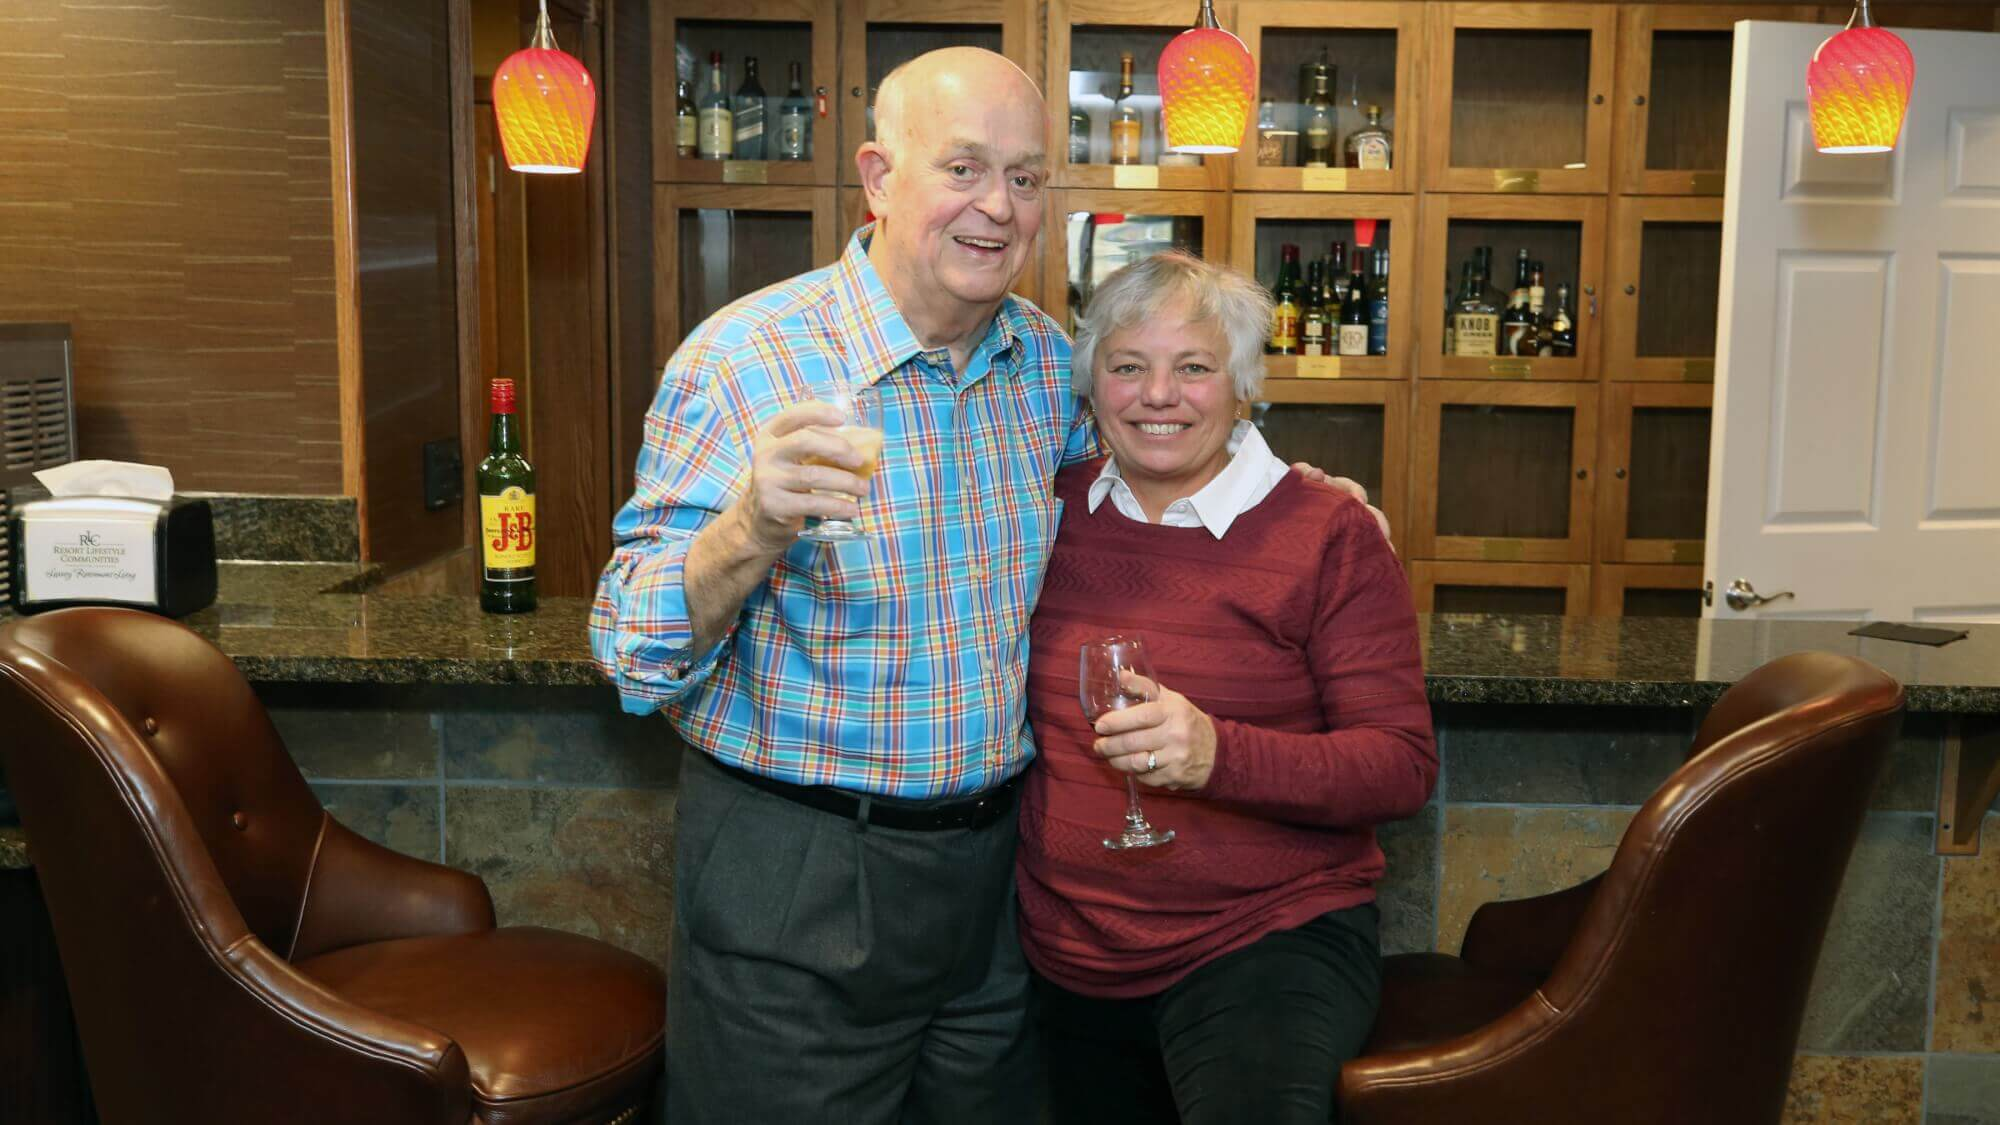 Resident couple enjoying a glass of scotch and wine in the happy hour lounge.